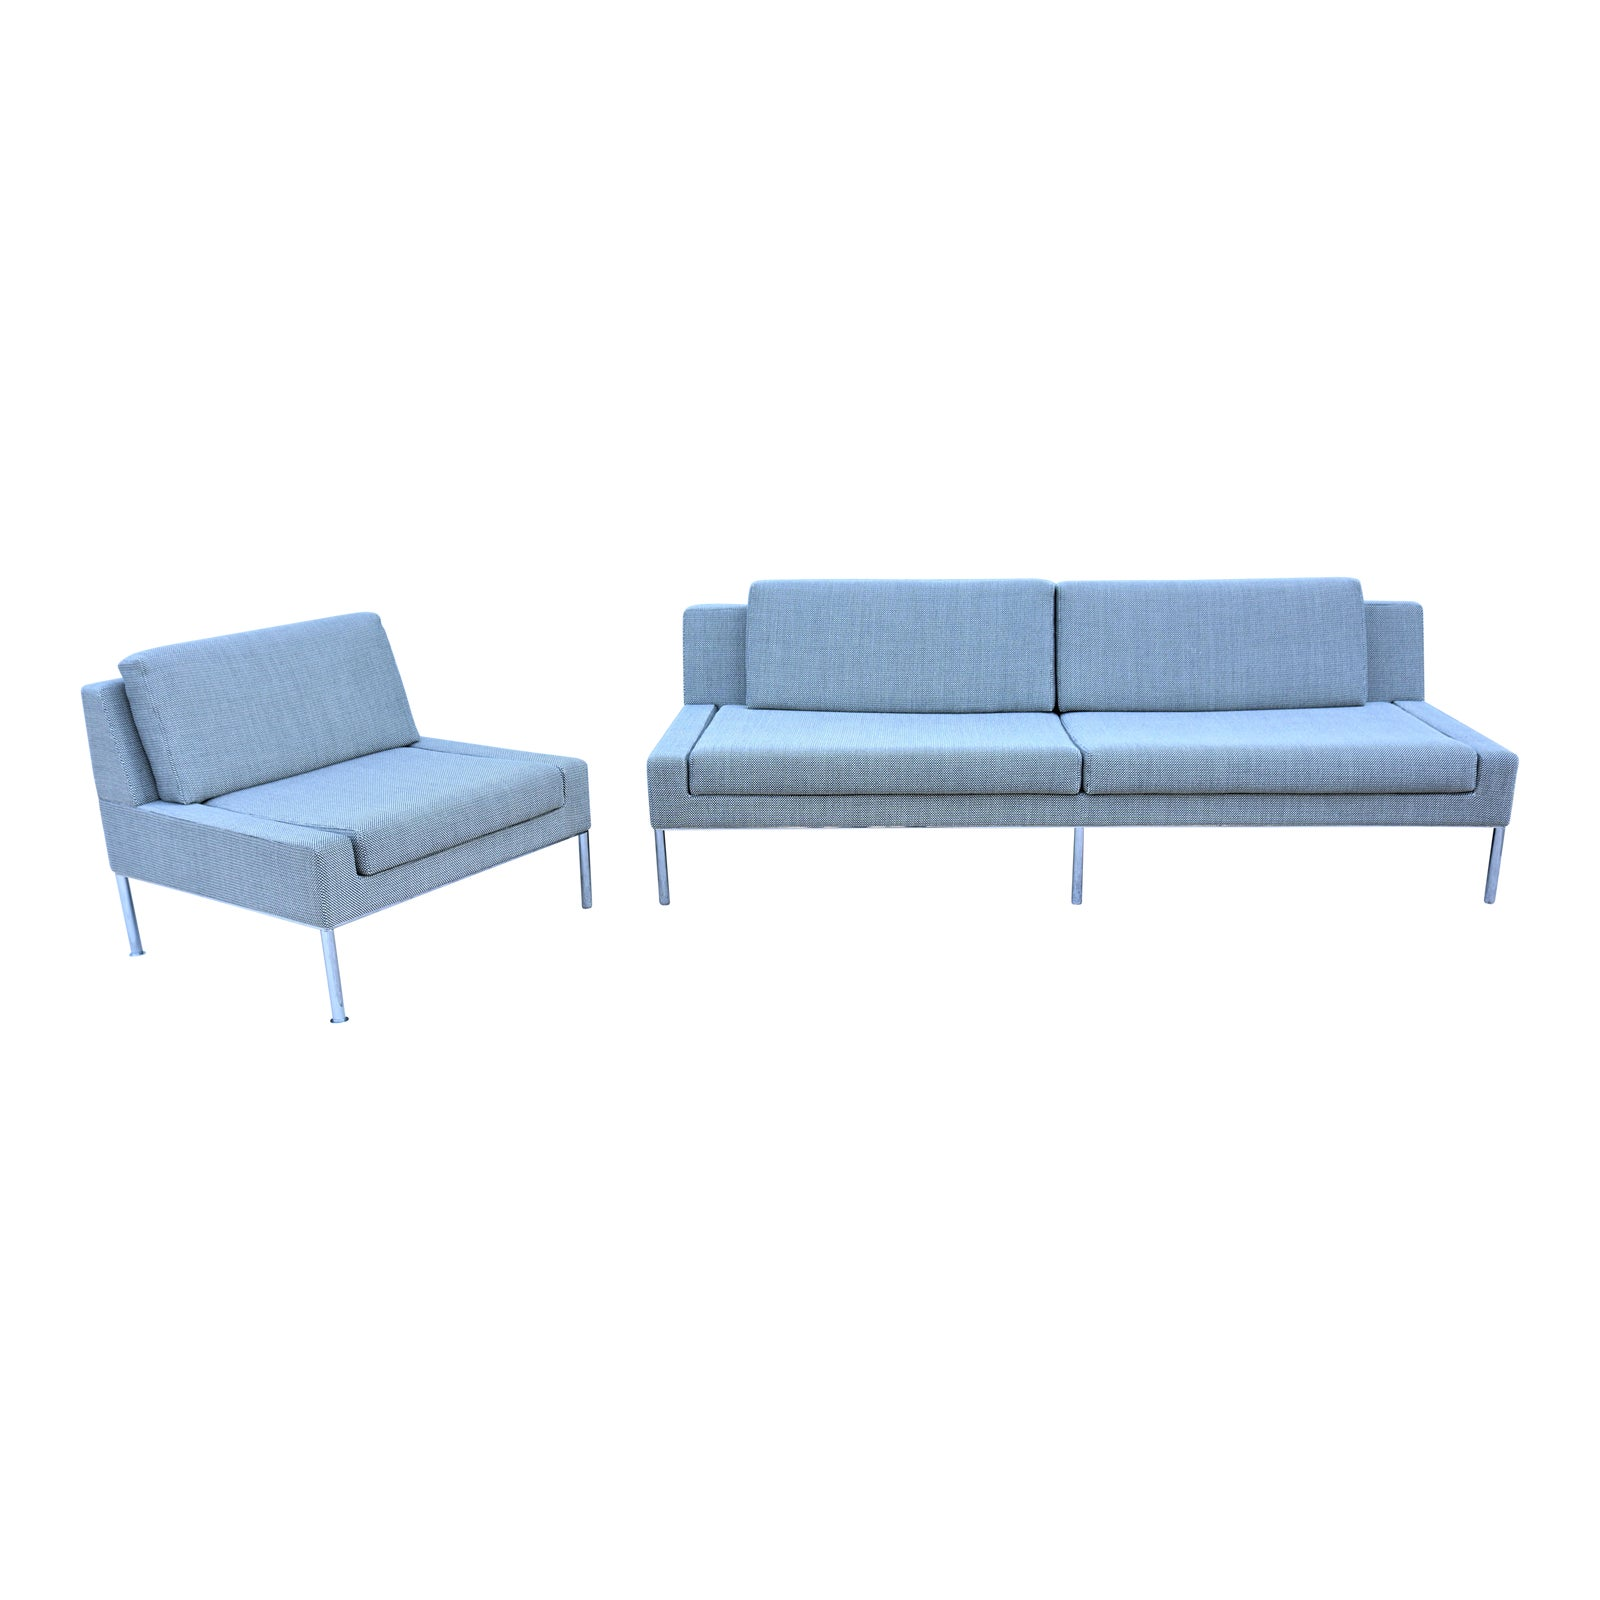 Modern Robin Rizzini for Keilhauer Dario Armless Sofa and Lounge Chair -  Set of 2